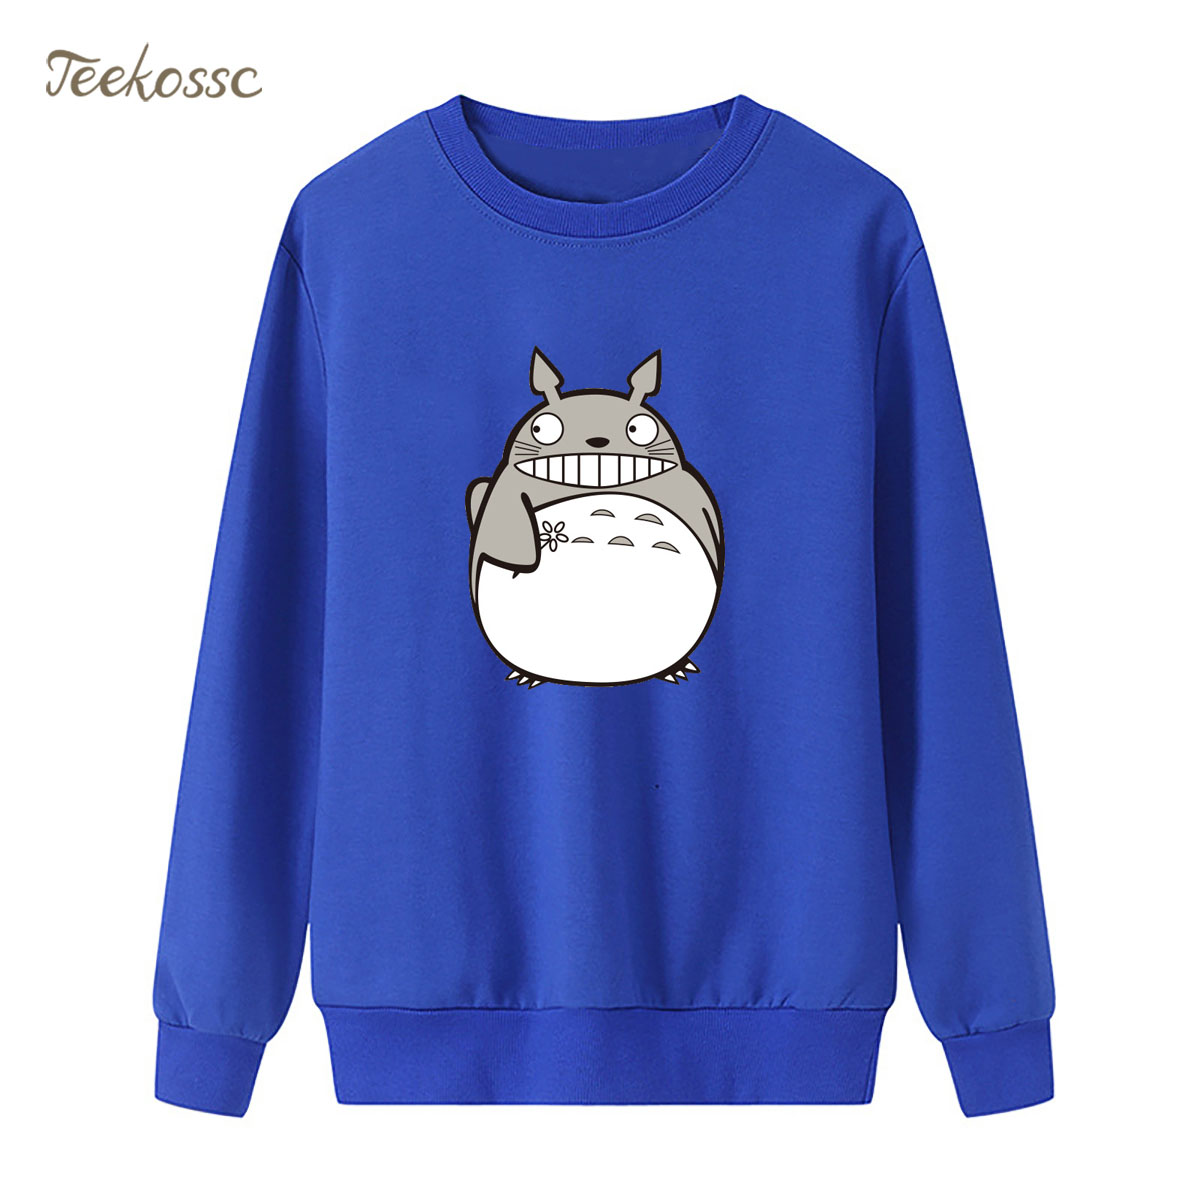 My Neighbor Totoro Sweatshirt Japan Anime Hoodie 2018 New Brand Winter Autumn Women Lasdies Pullover Fleece Warm Cute Streetwear